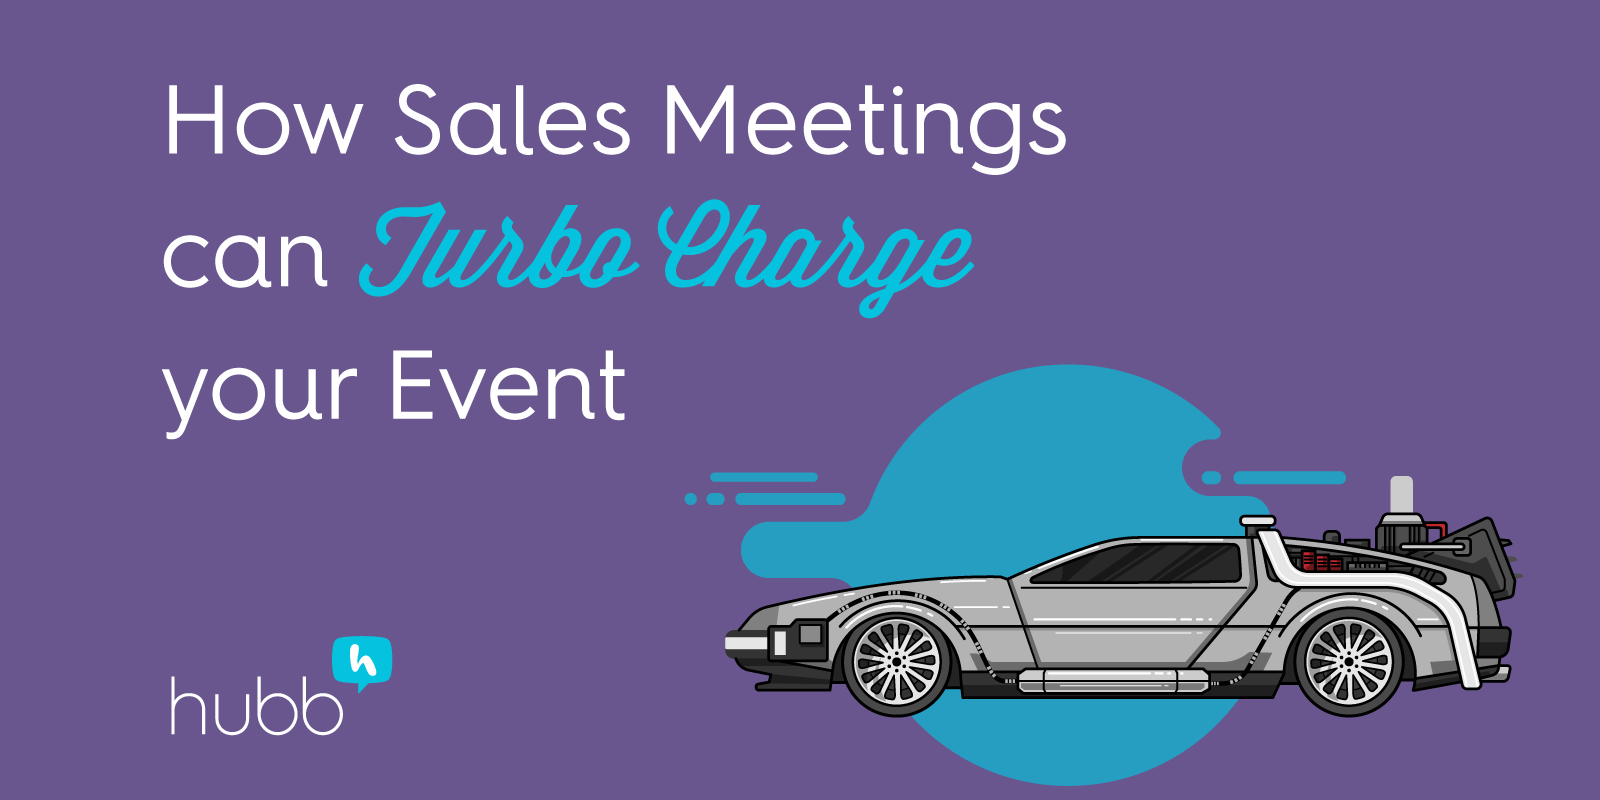 SalesMeetings-Turbo-Charge-Event-Social